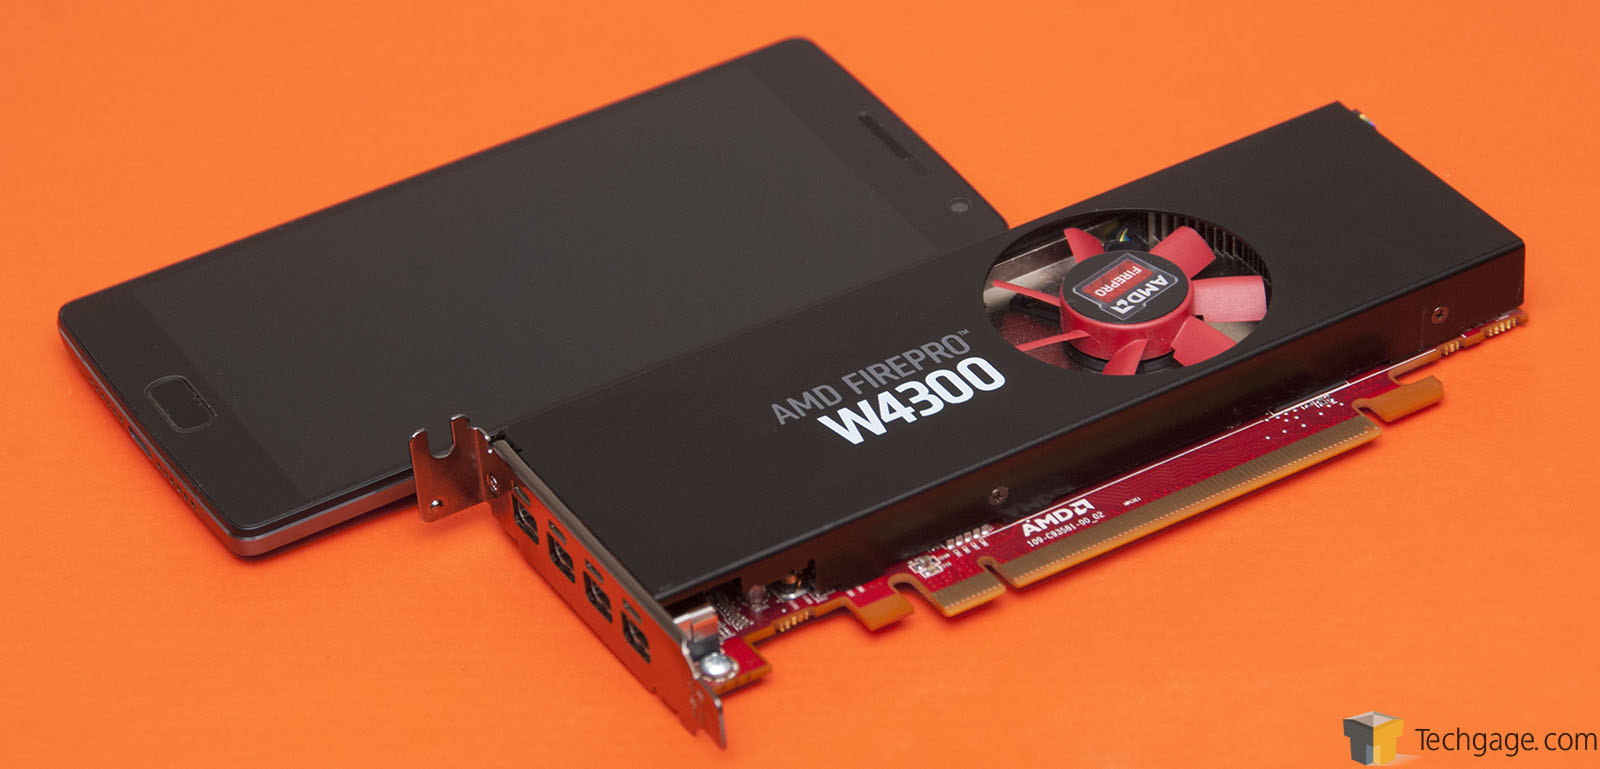 A Quick Look At AMD's FirePro W4300 Workstation Graphics Card – Techgage